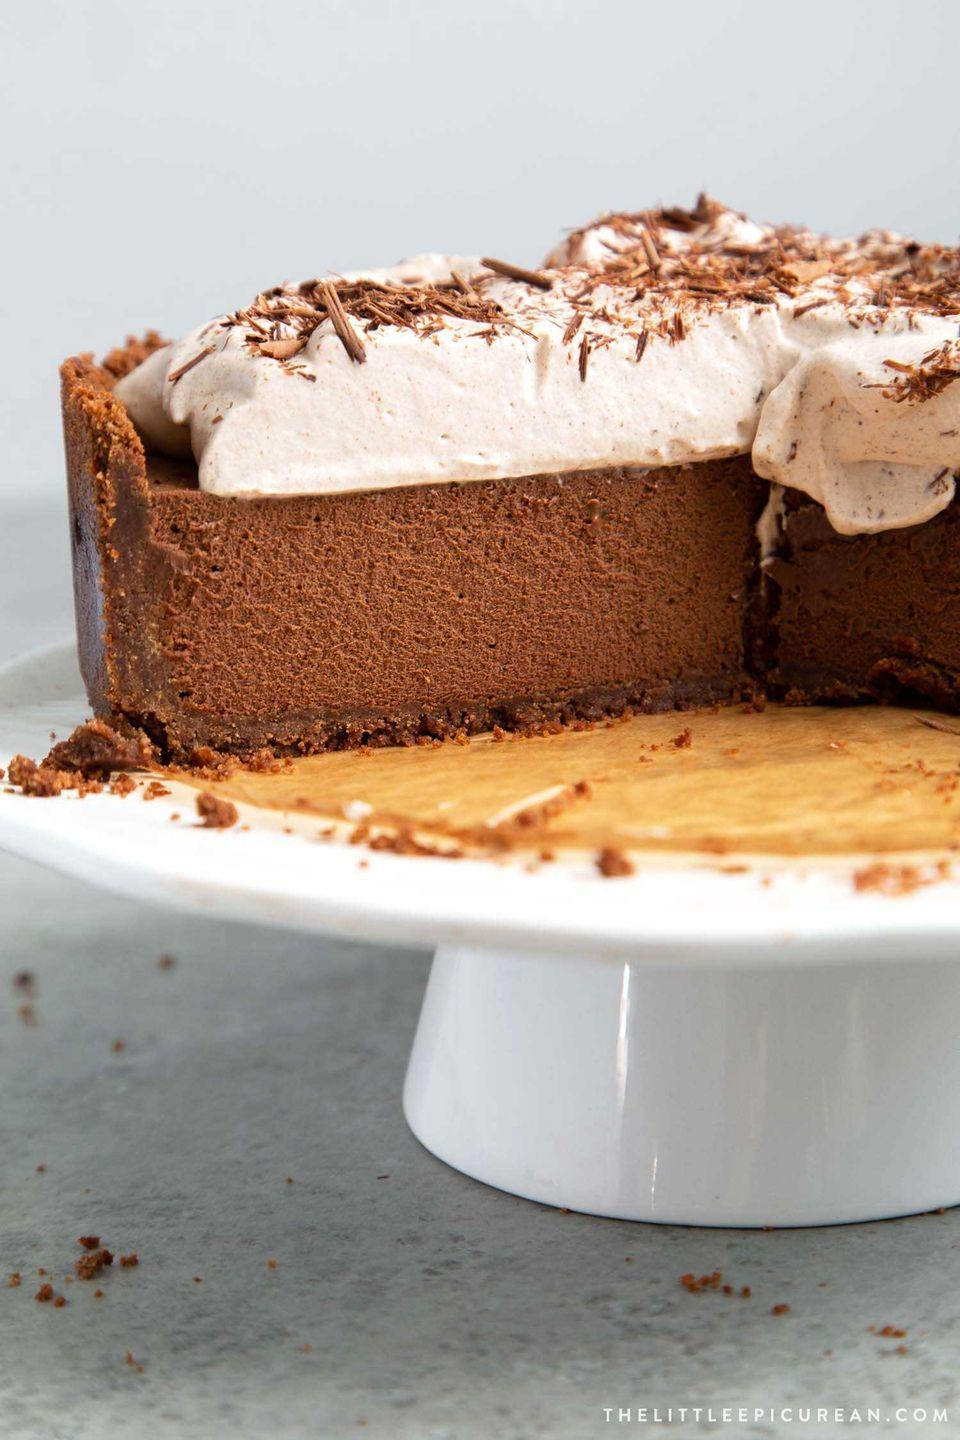 """<p>Love a rich dessert? Try a silky mousse-filled pie topped with whipped cream and plenty of chocolate shavings. </p><p><a href=""""https://www.thelittleepicurean.com/2019/08/chocolate-mousse-pie.html"""" rel=""""nofollow noopener"""" target=""""_blank"""" data-ylk=""""slk:Get the recipe"""" class=""""link rapid-noclick-resp"""">Get the recipe</a>.</p>"""